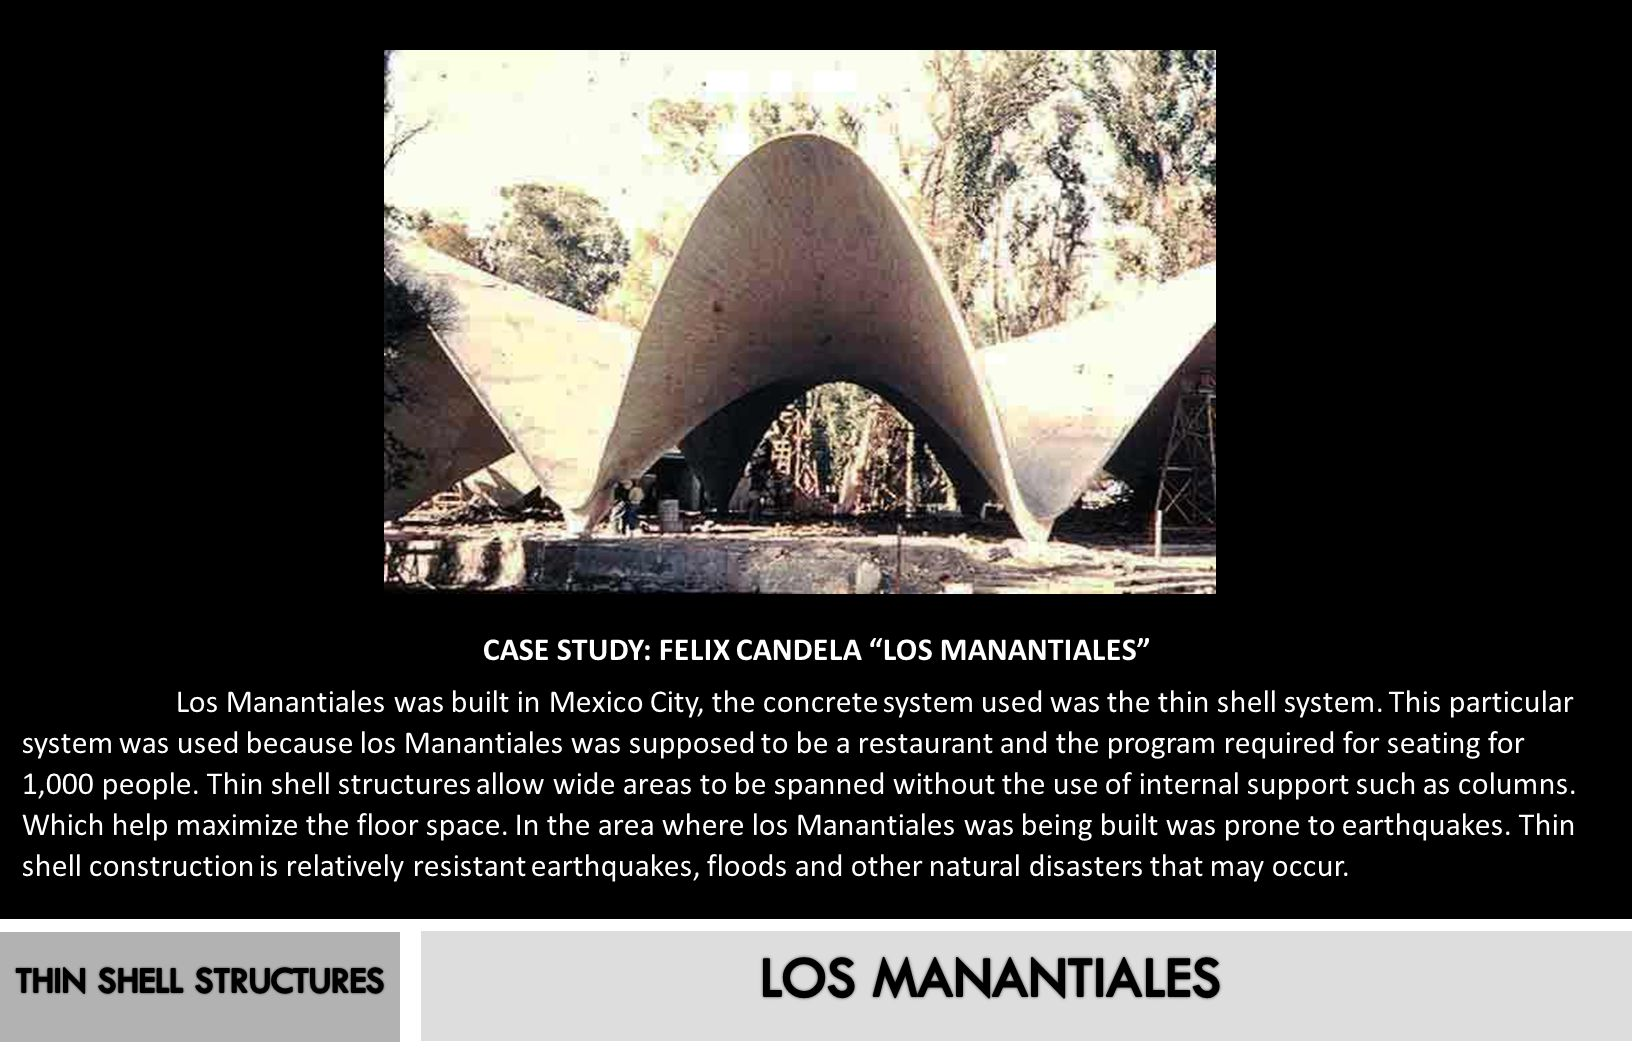 LOS MANANTIALES THIN SHELL STRUCTURES